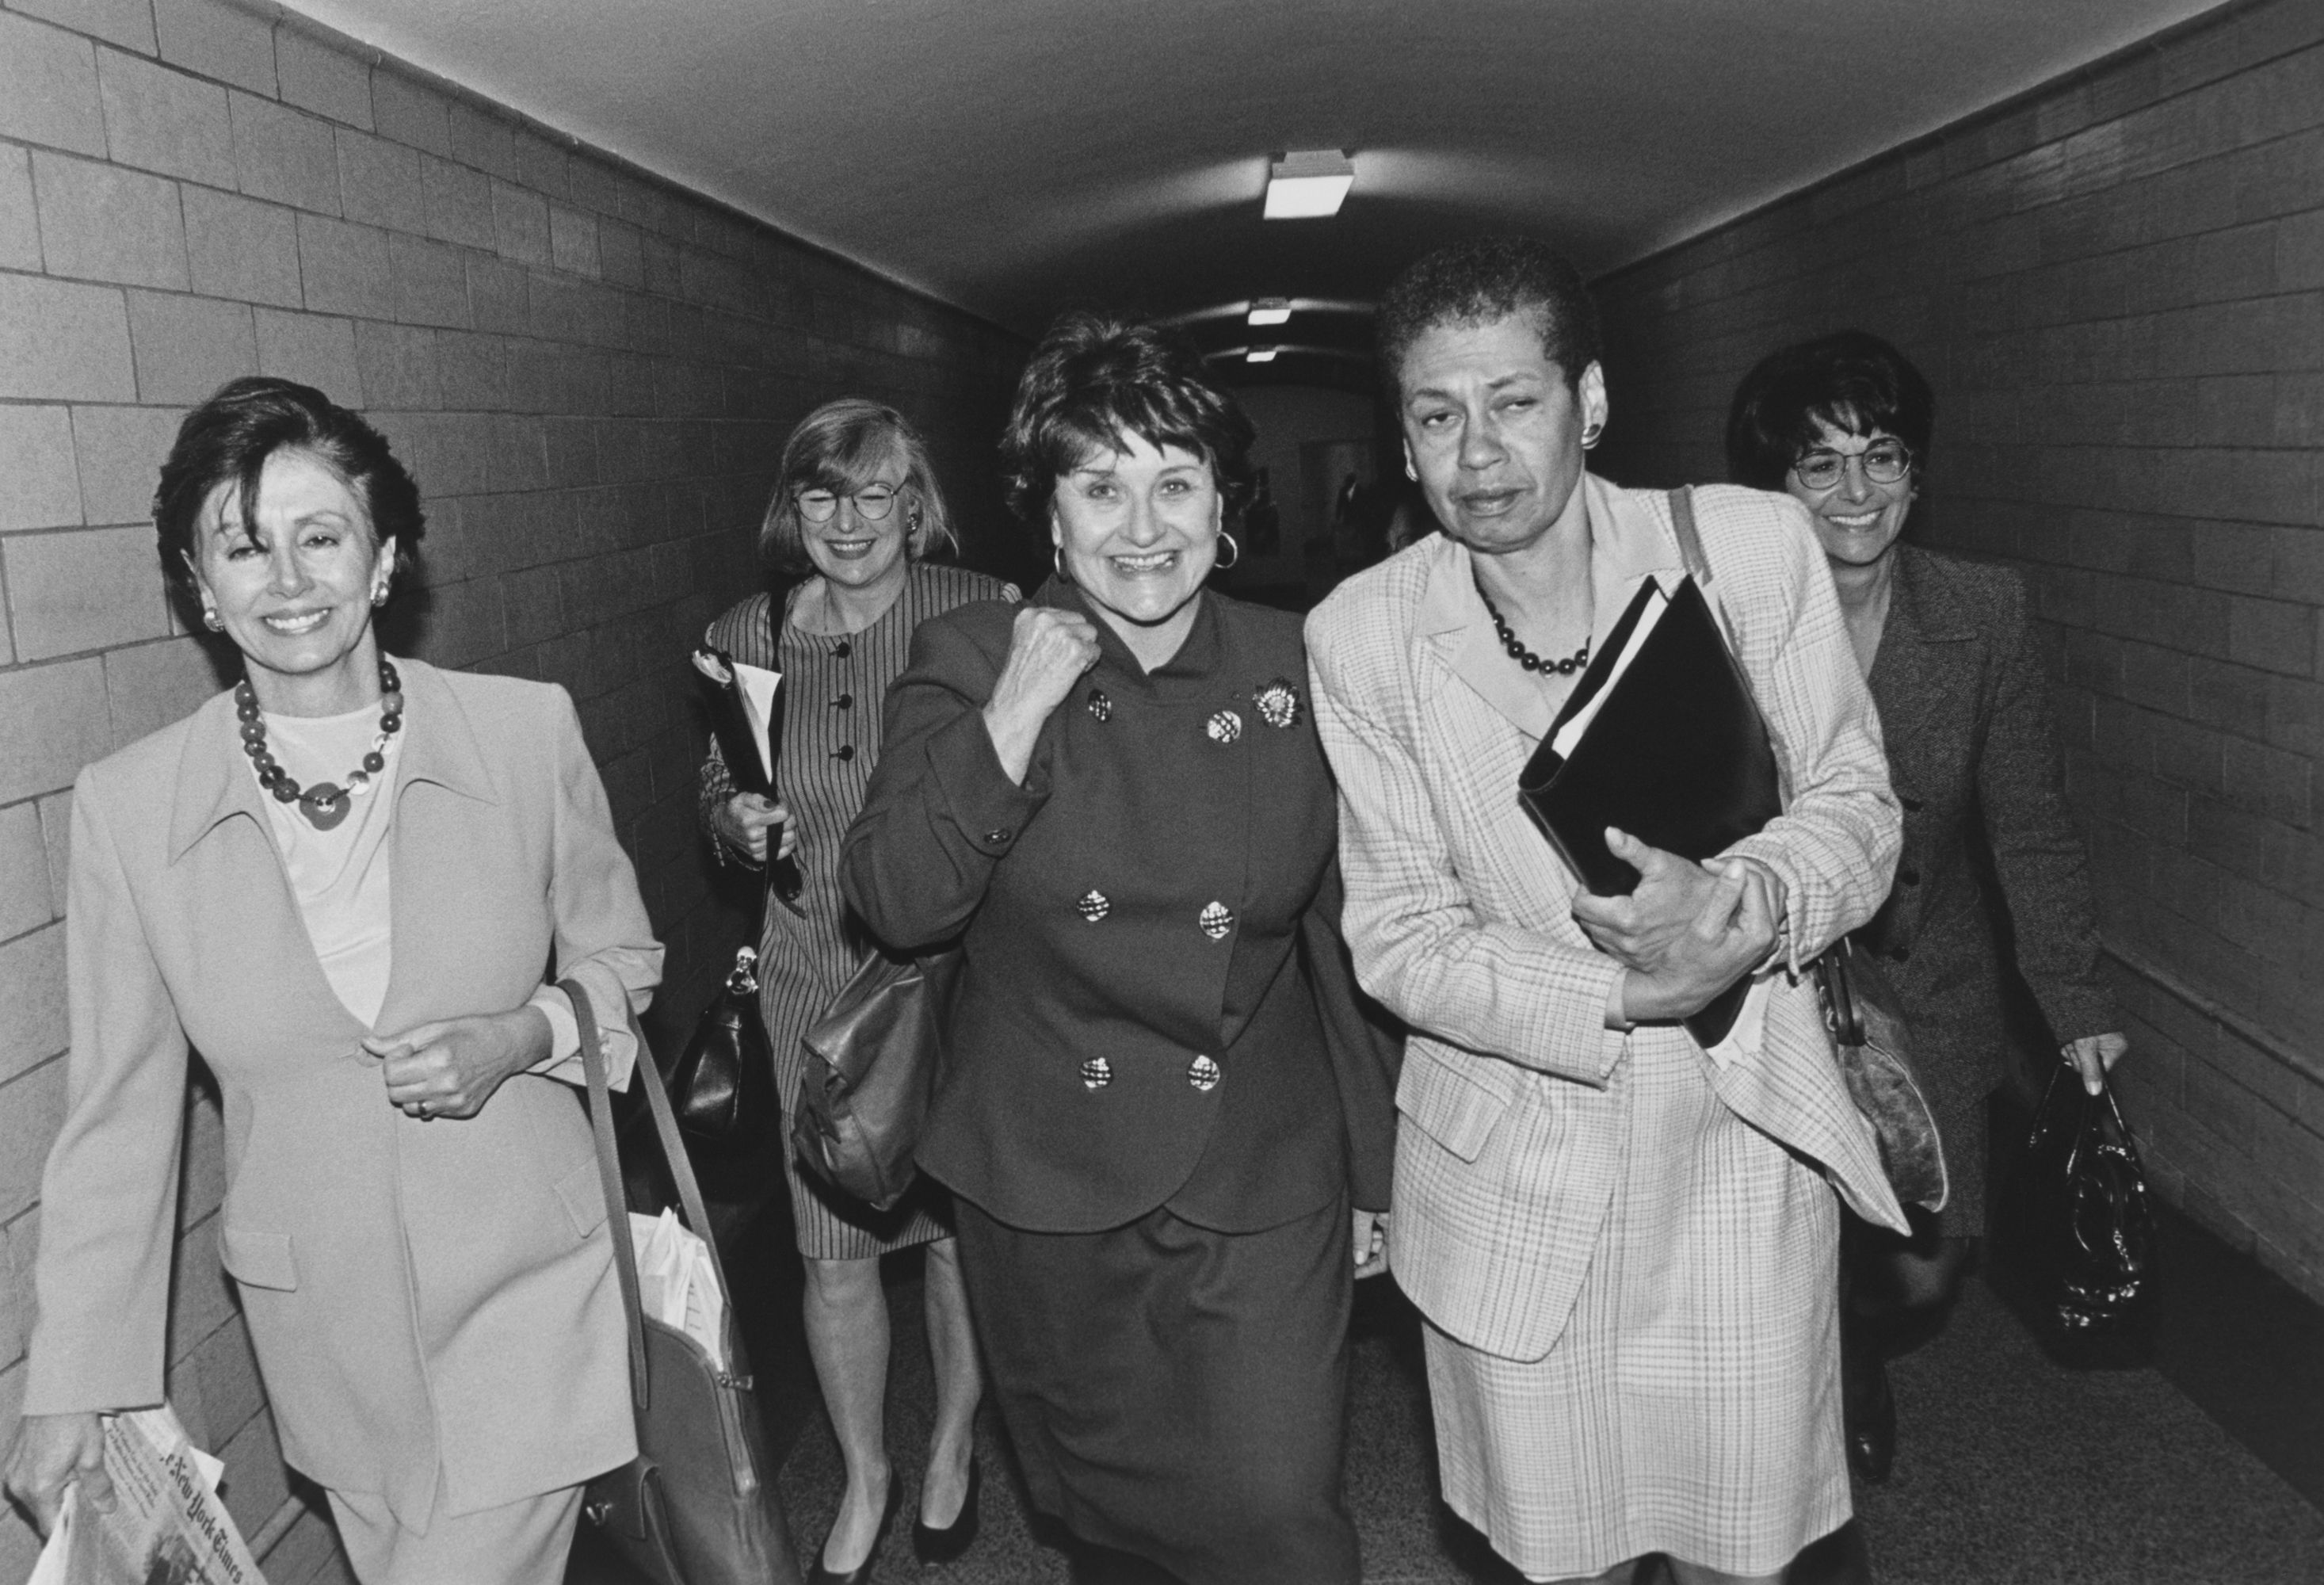 Pelosi is joined by party members and friends Louise Slaughter, Lynn Woolsey, and Anna Eshoo.